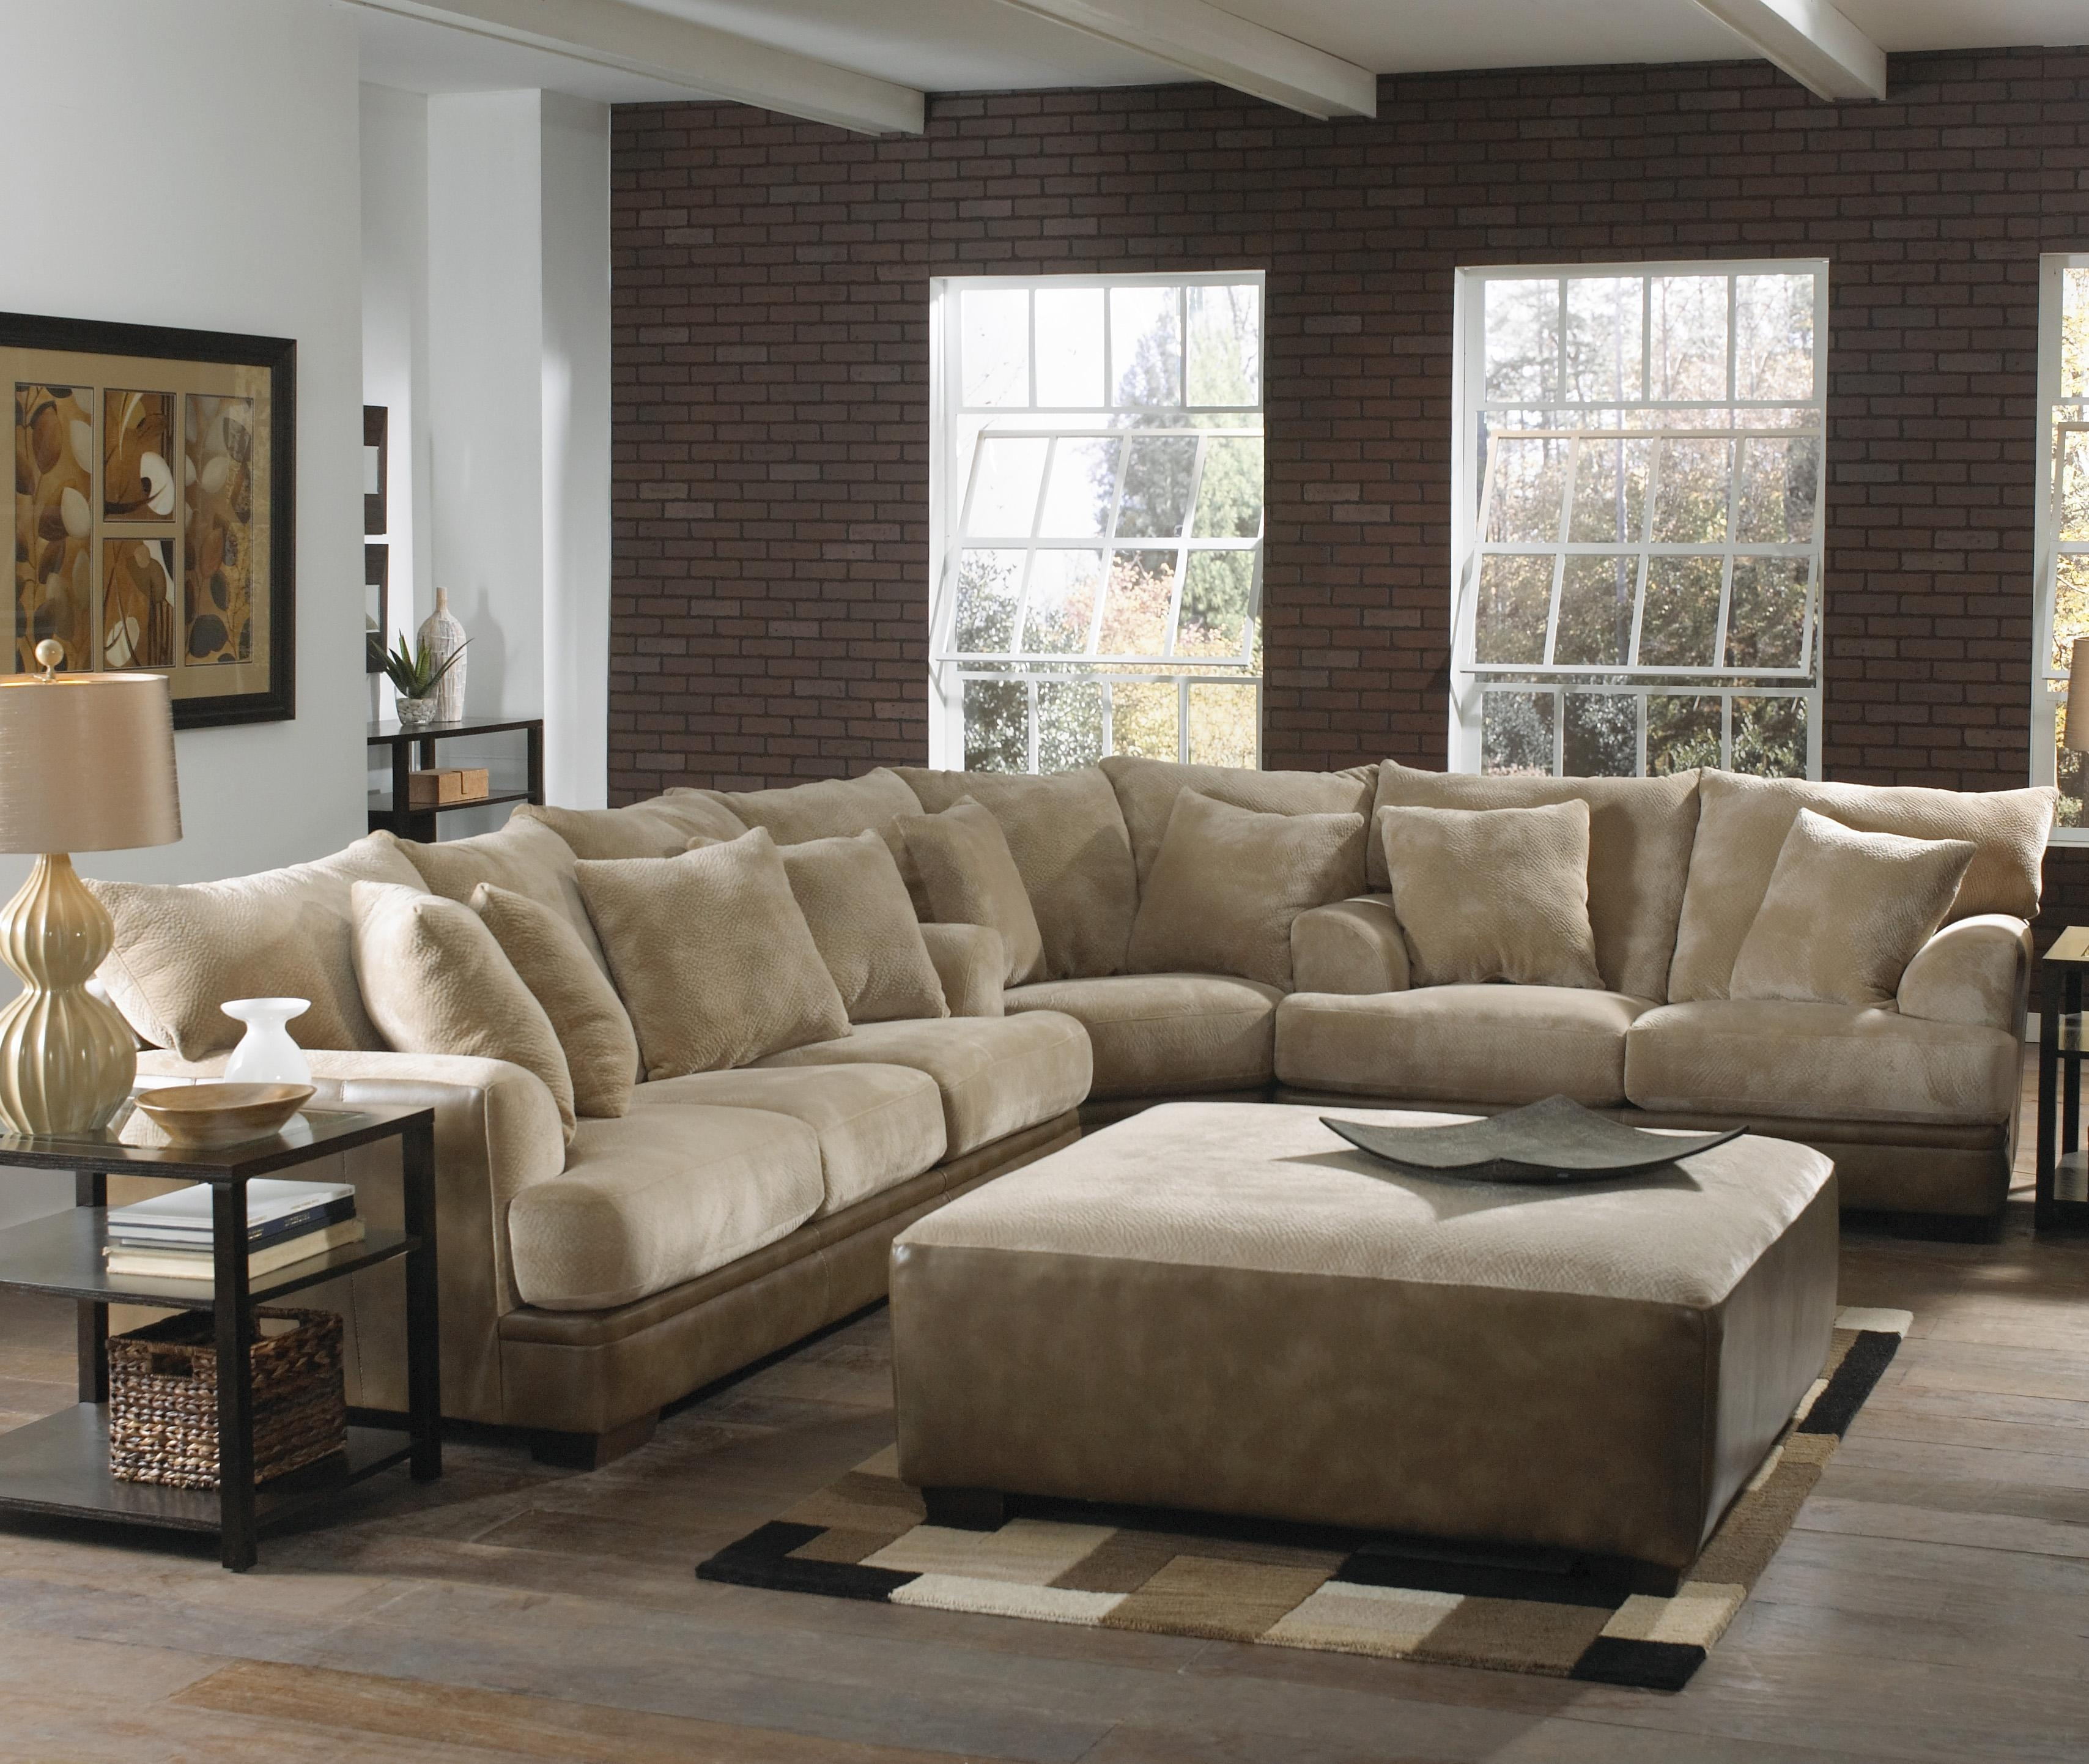 7 Seat Sectional Sofa - Cleanupflorida inside Sectional Sofas At Brick